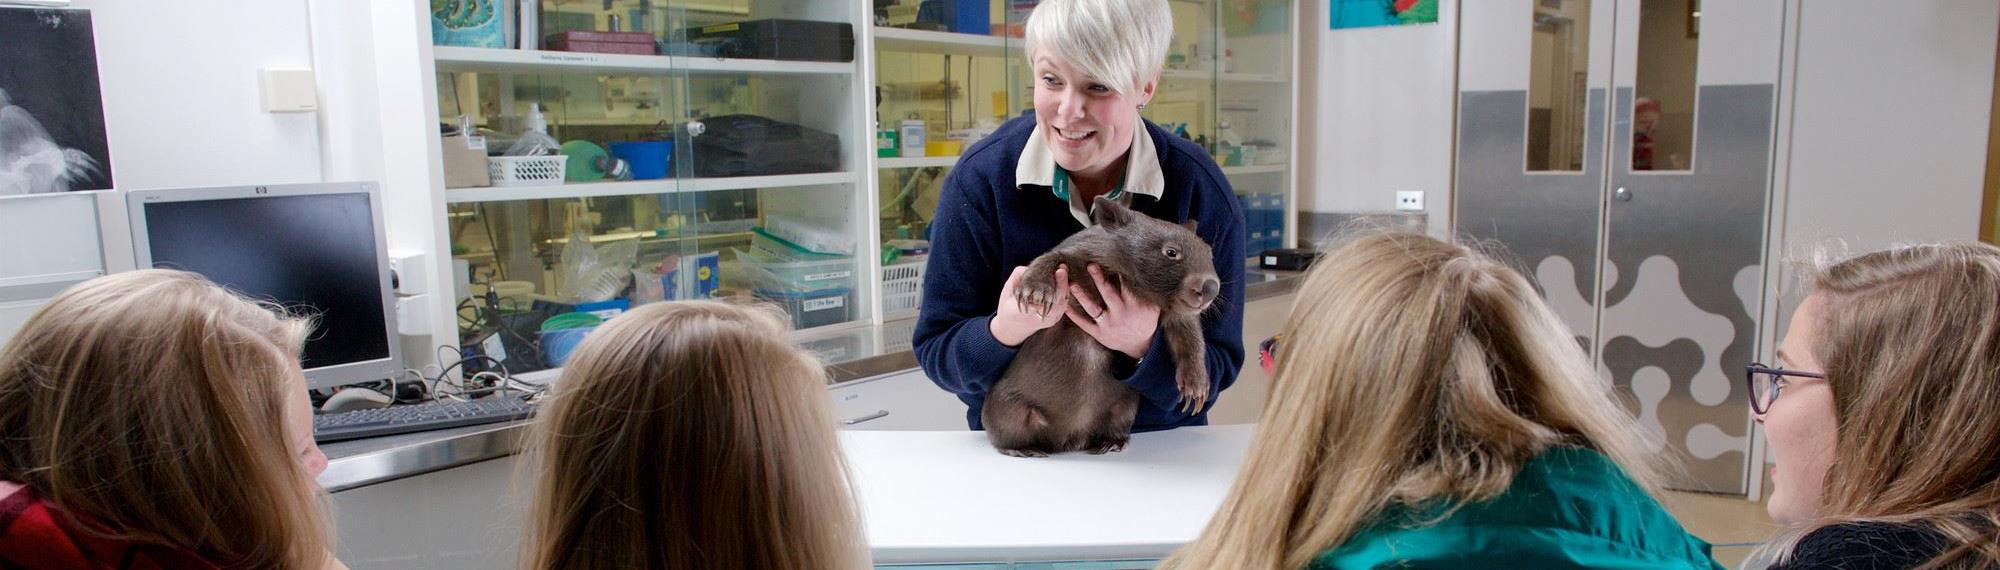 Female Vet nurse holding a young wombat on an examination table while four students look on.